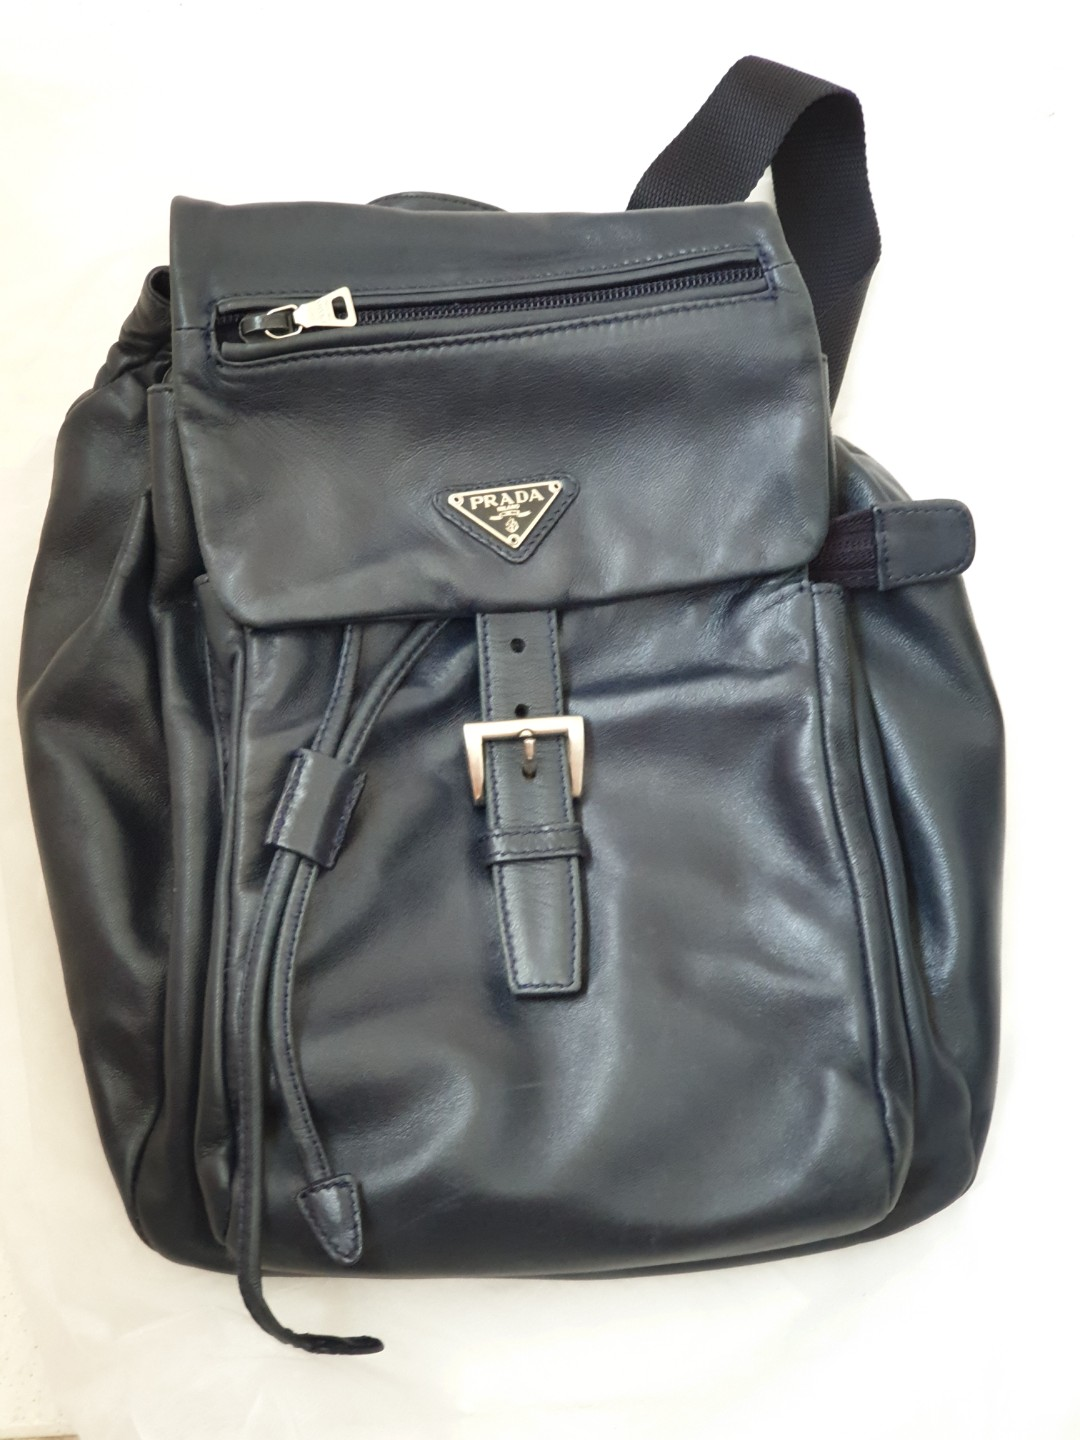 bec19e99aa27 Prada Leather Bag, Luxury, Bags & Wallets, Backpacks on Carousell